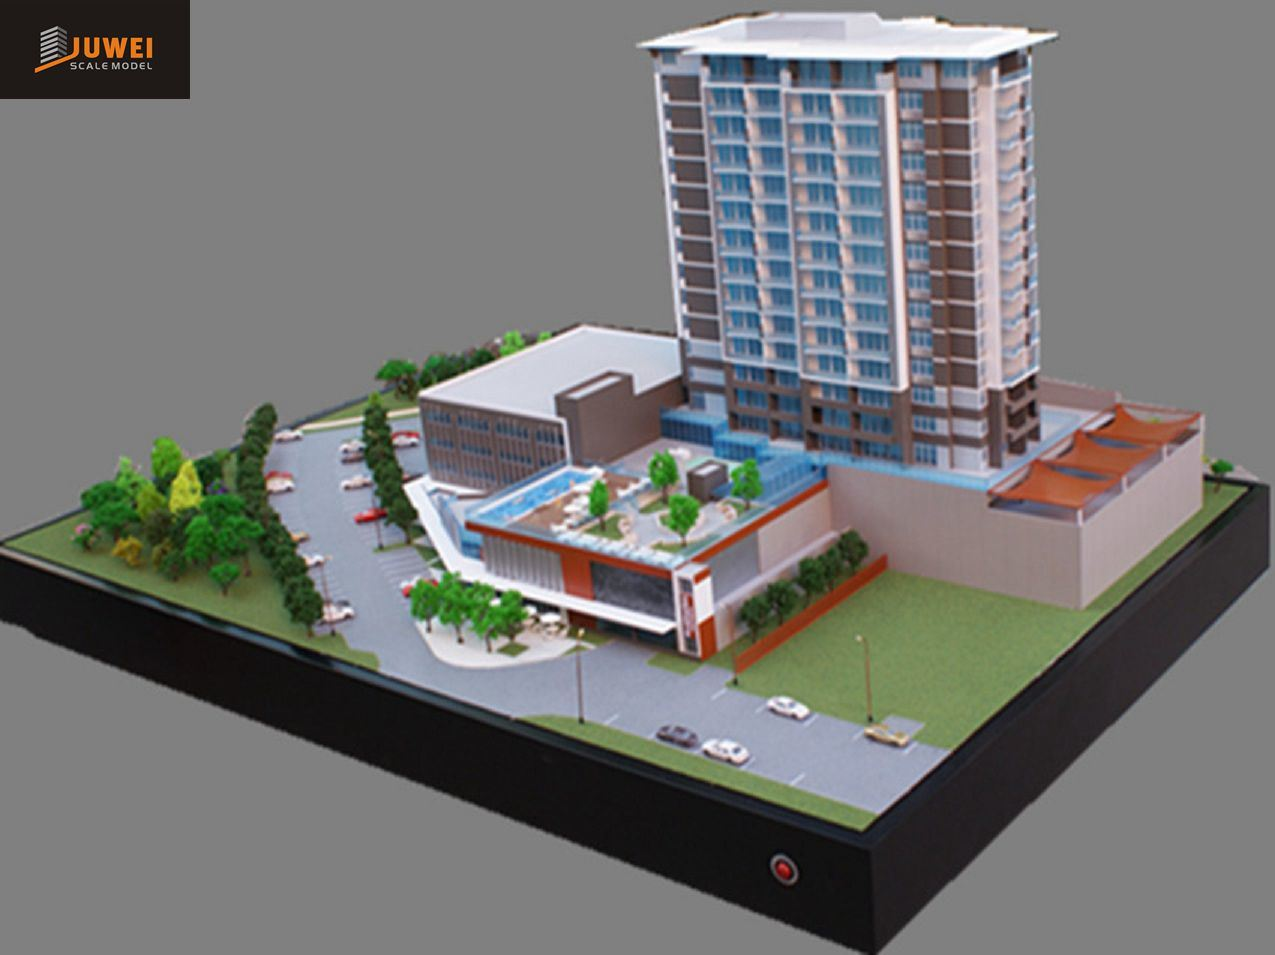 China architectural model making 1 100 scale model building china architectural model making commercial models